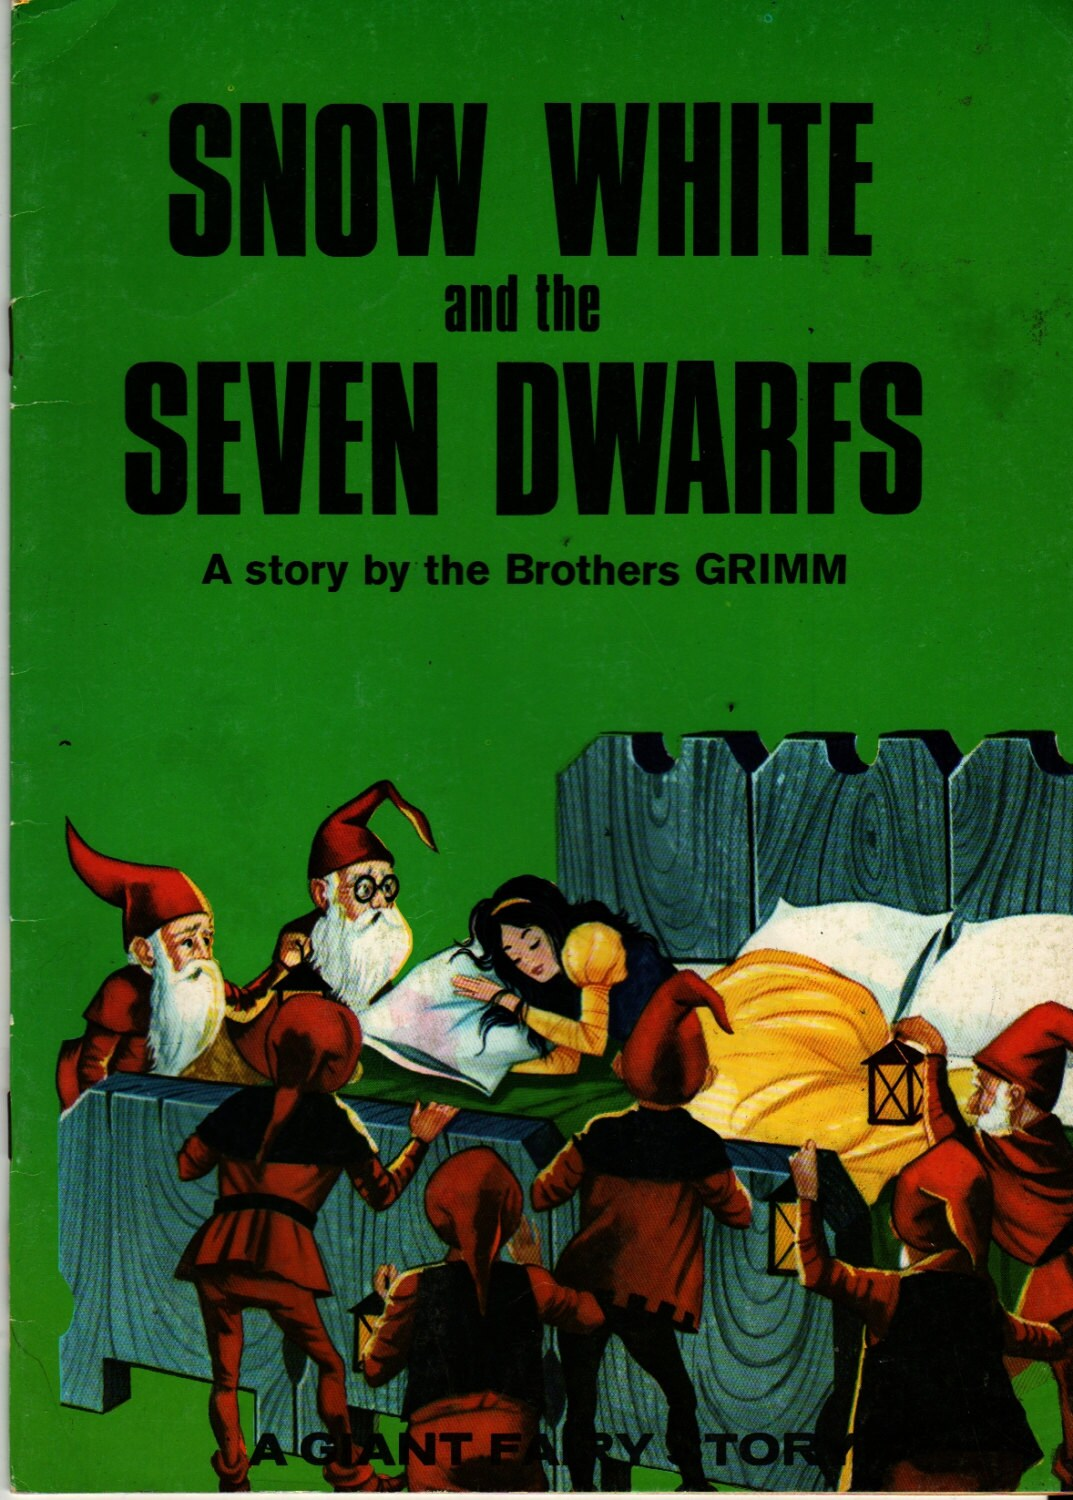 Snow White and the Seven Dwarfs a Giant Fairy Story A story by the